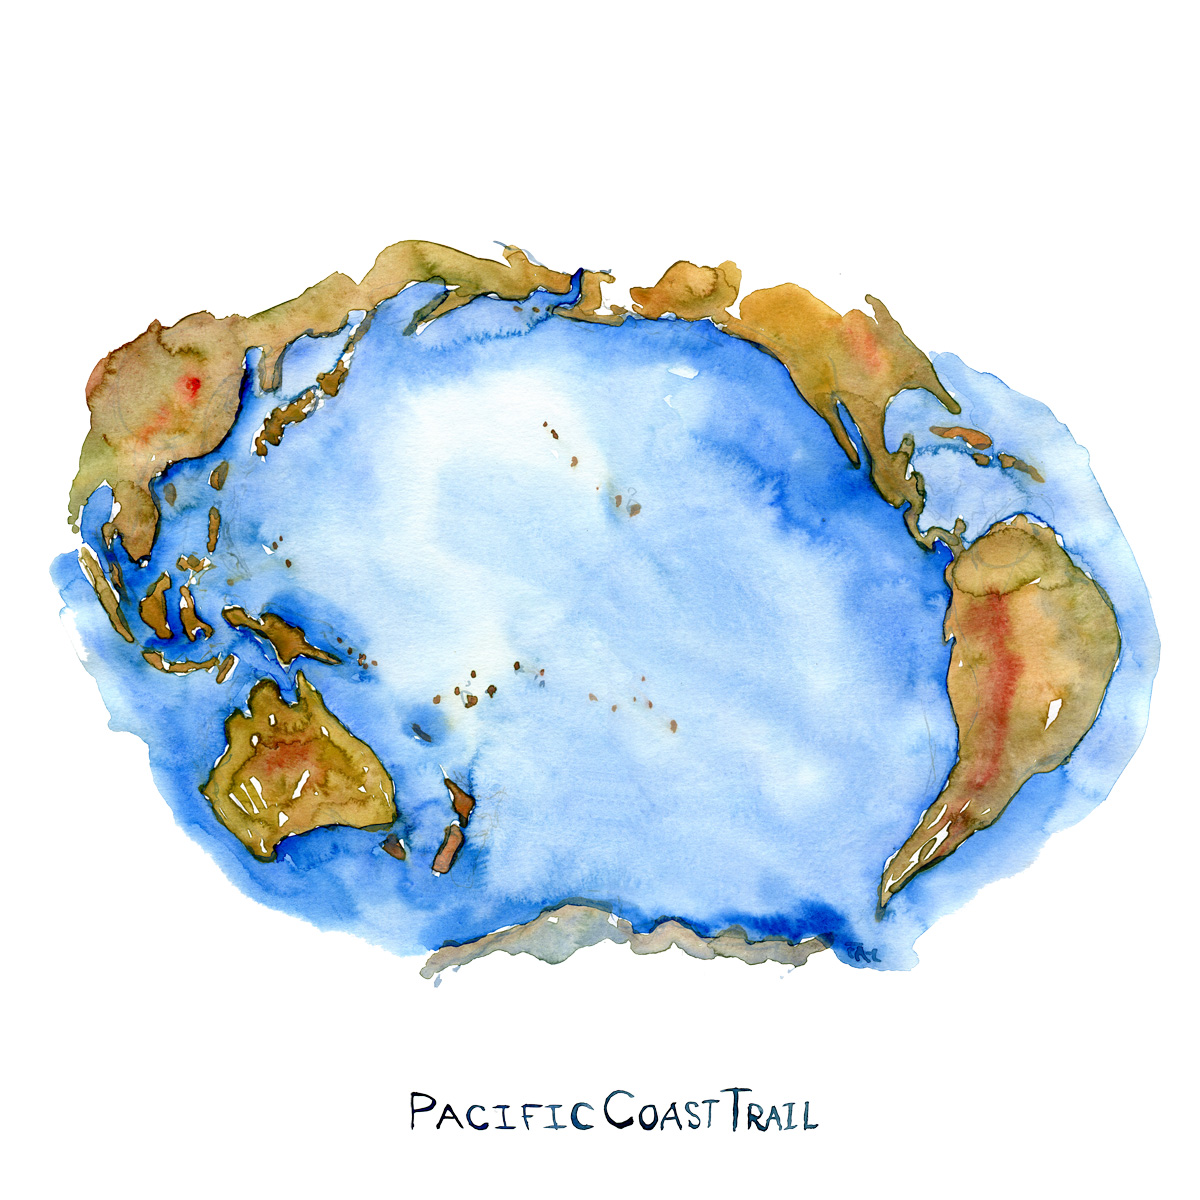 Watercolor of Pacific Ocean with text Pacific Coast Trail. Artwork by Frits Ahlefeldt